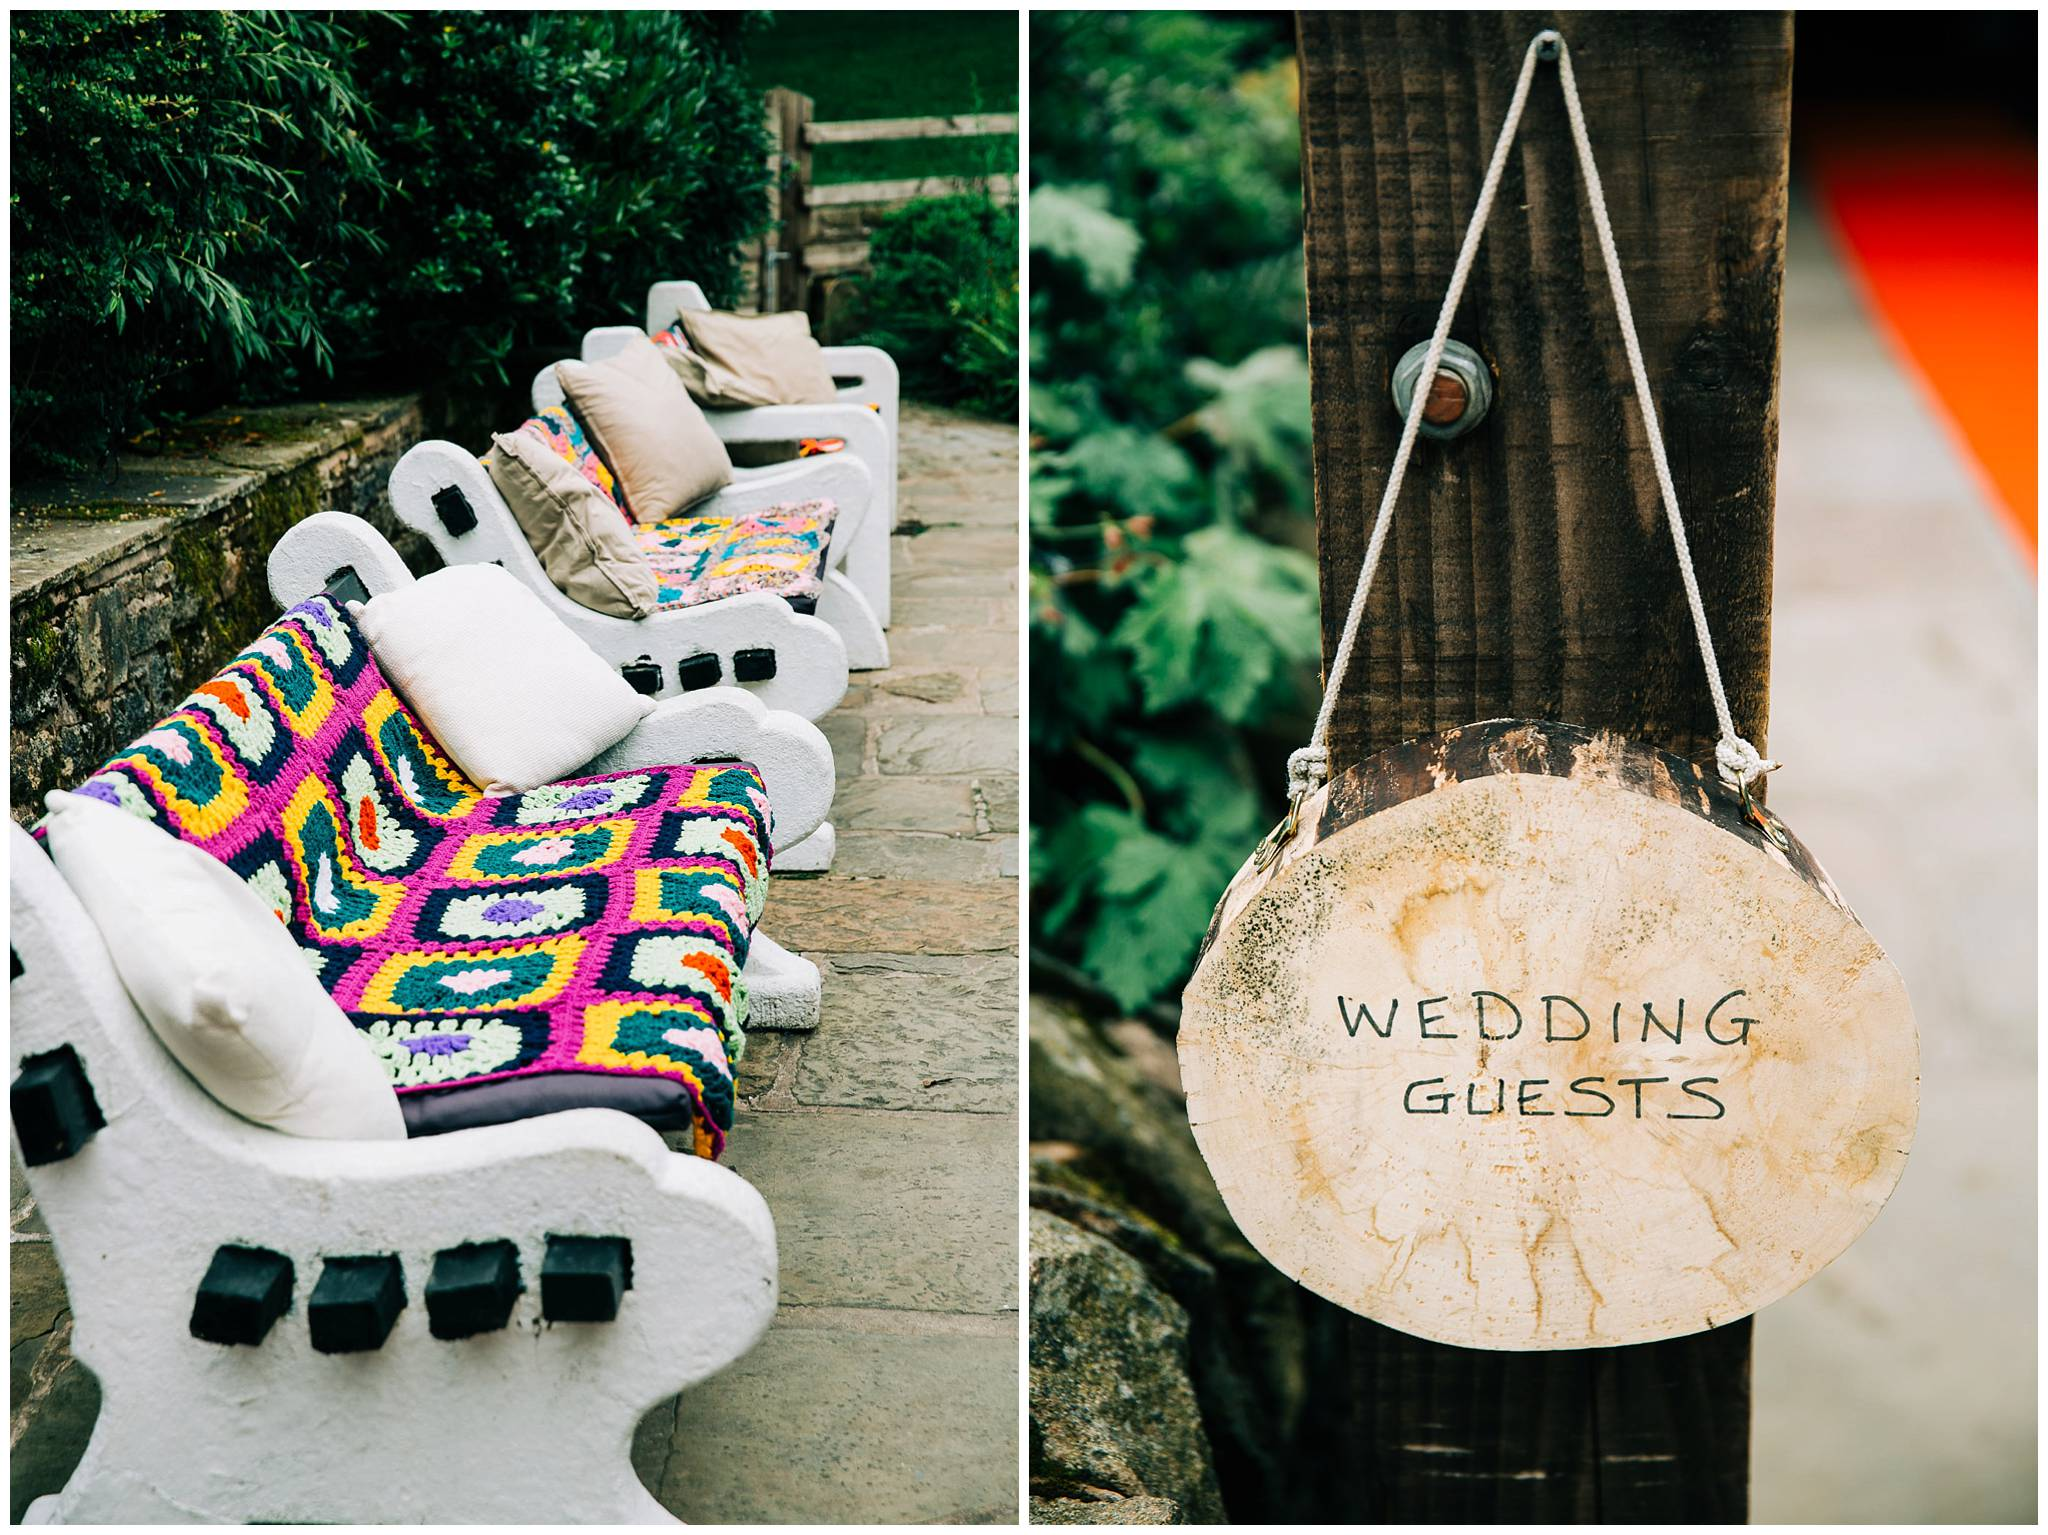 handmade crochet blankets on outdoor benches and a wooden wedding sign